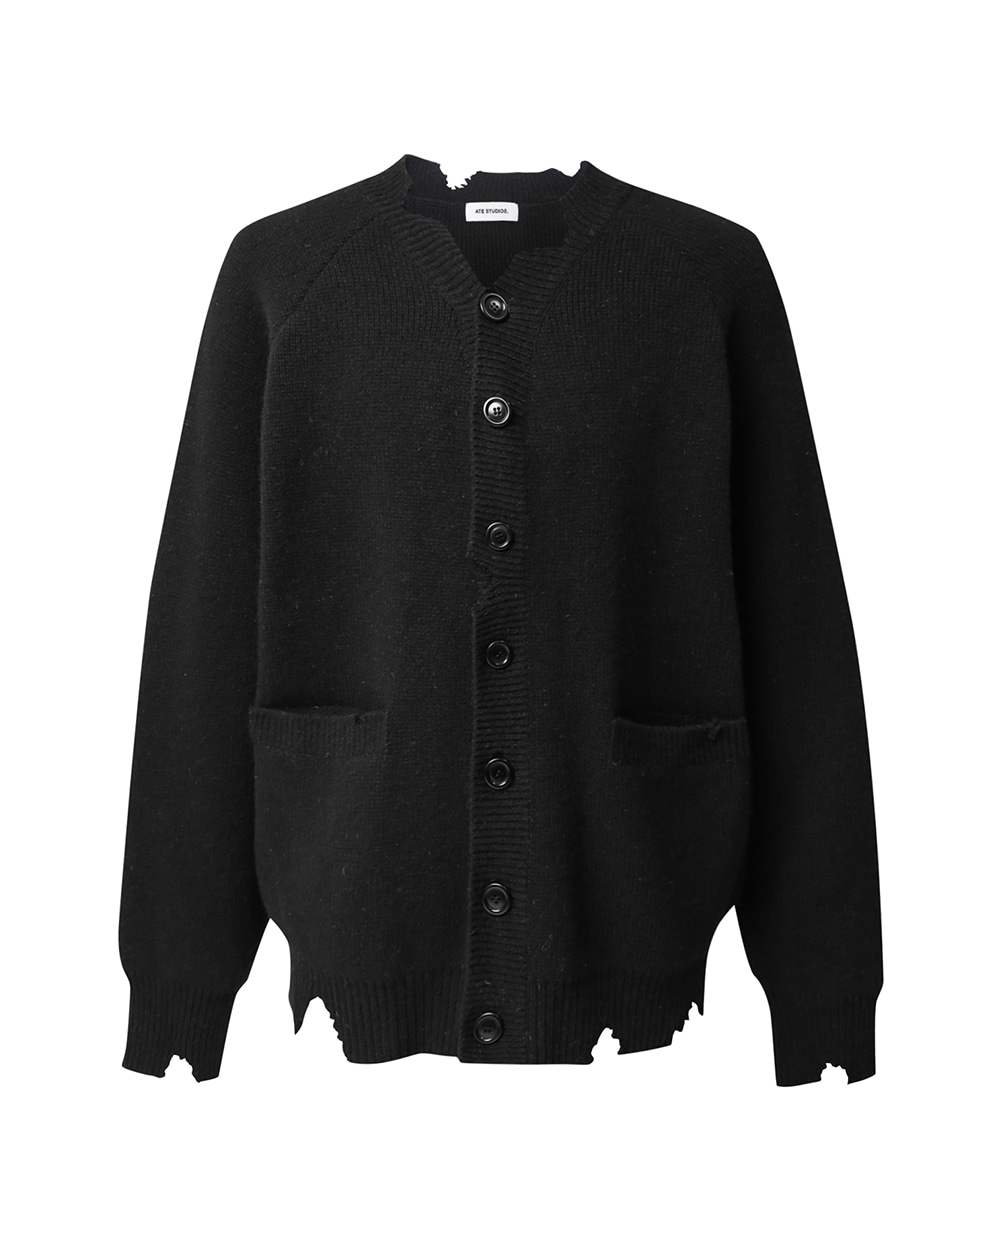 ATE STUDIOS PULLED OUT LAMBSWOOL CARDIGAN (Black)